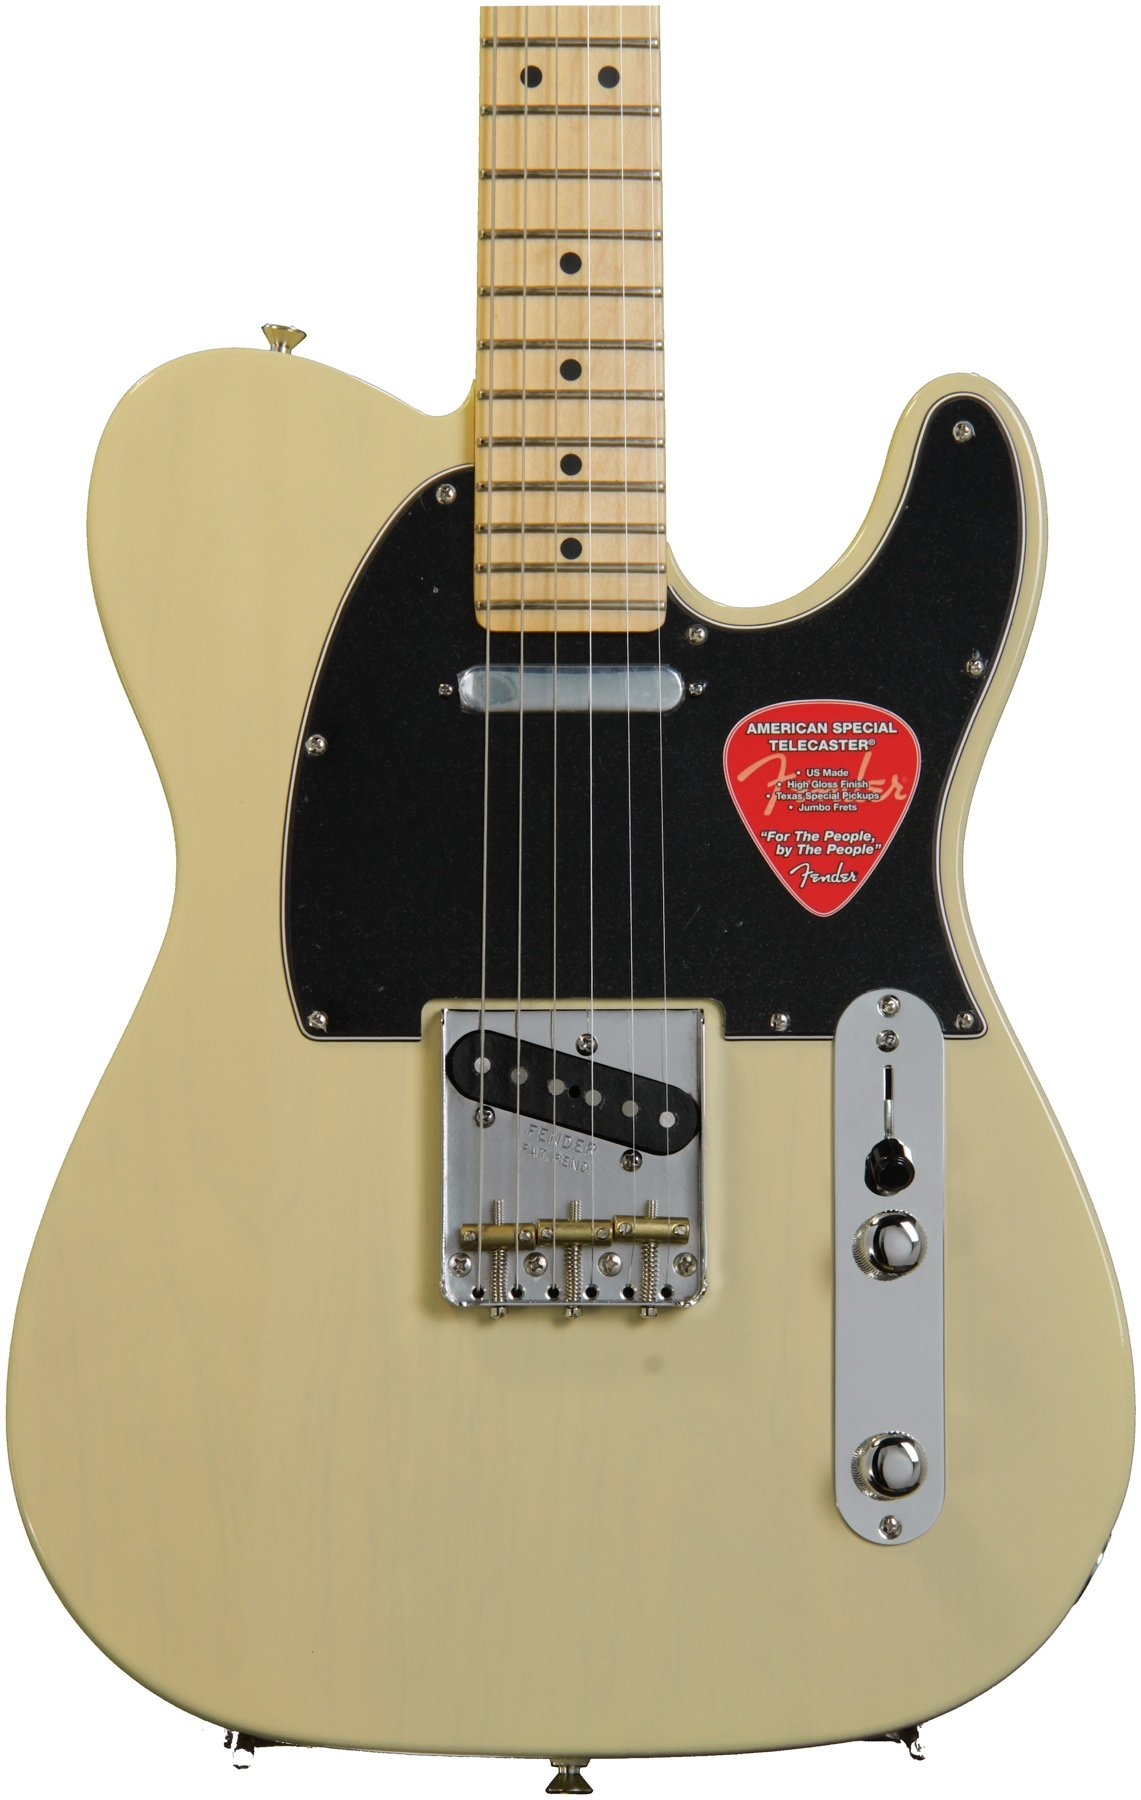 Fender Tele Plus Wiring Manual Guide Diagram Telecaster Humbucker Moder Player 50 Images Diagrams Schematic 5 Way